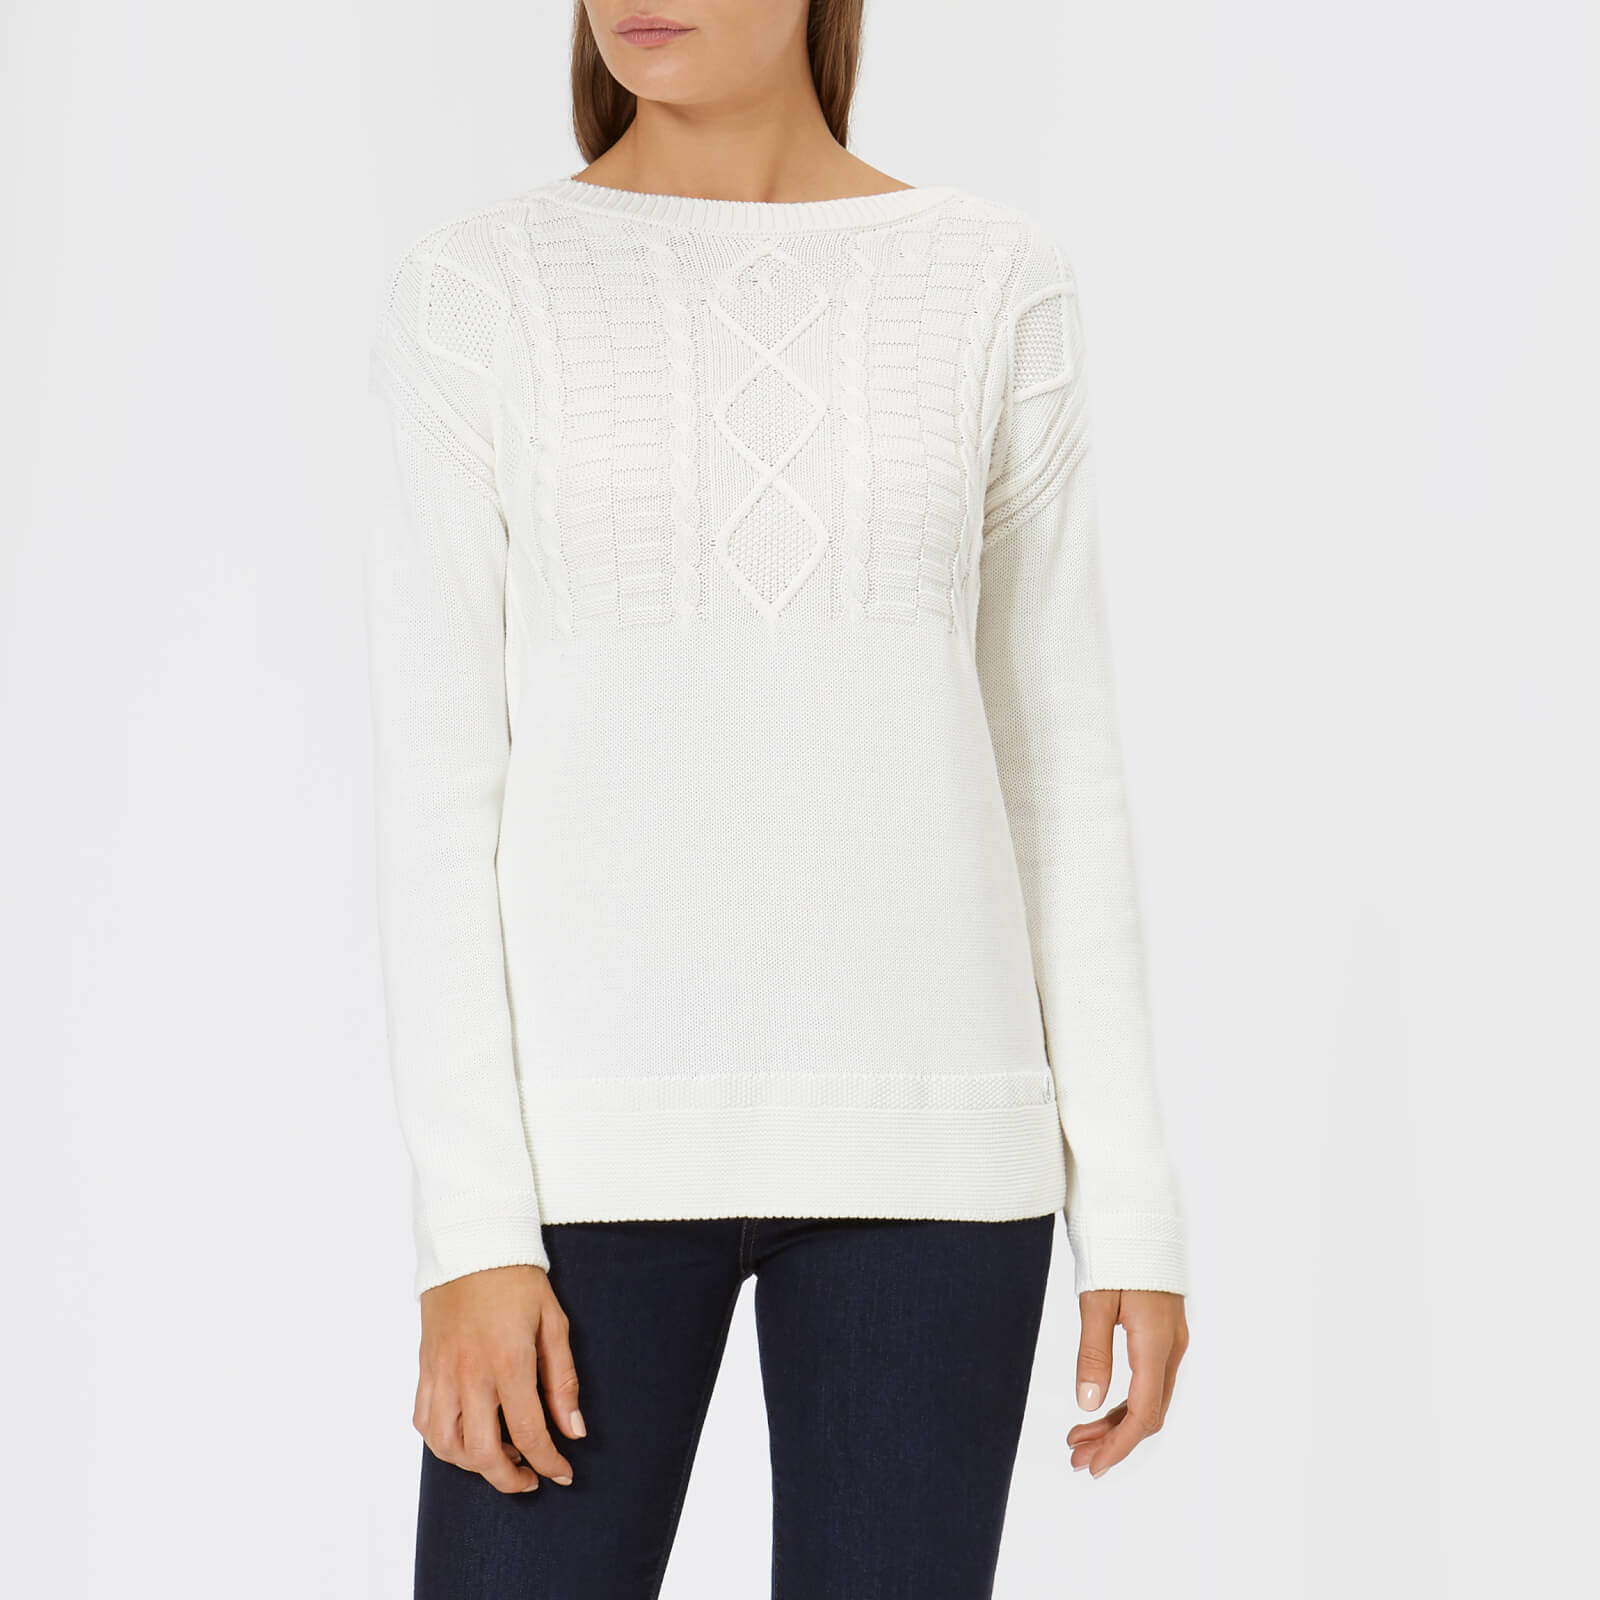 f505c6453bd4 Barbour Women s Weymouth Knit Jumper - Off White Womens Clothing ...